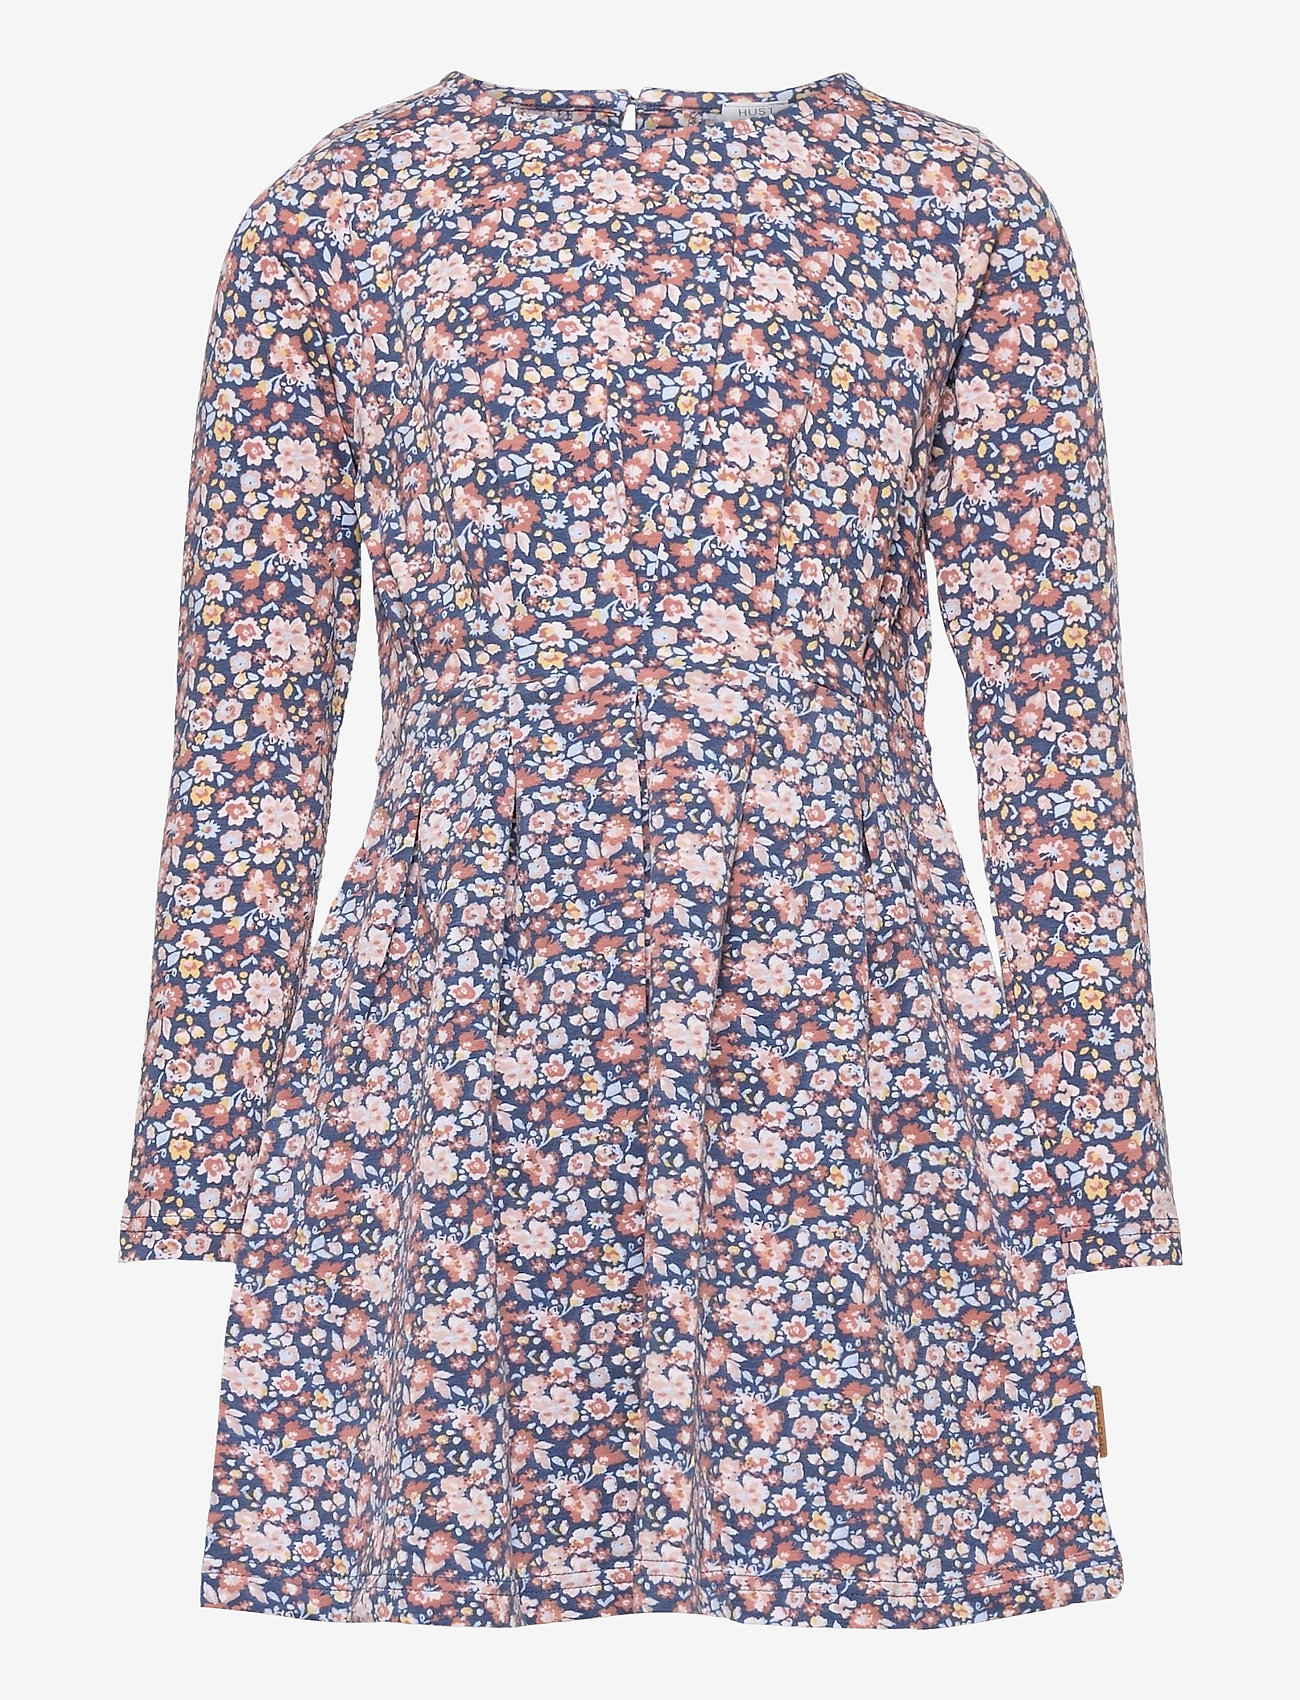 Hust & Claire - Delvin - Dress - kleider - peony blue - 0